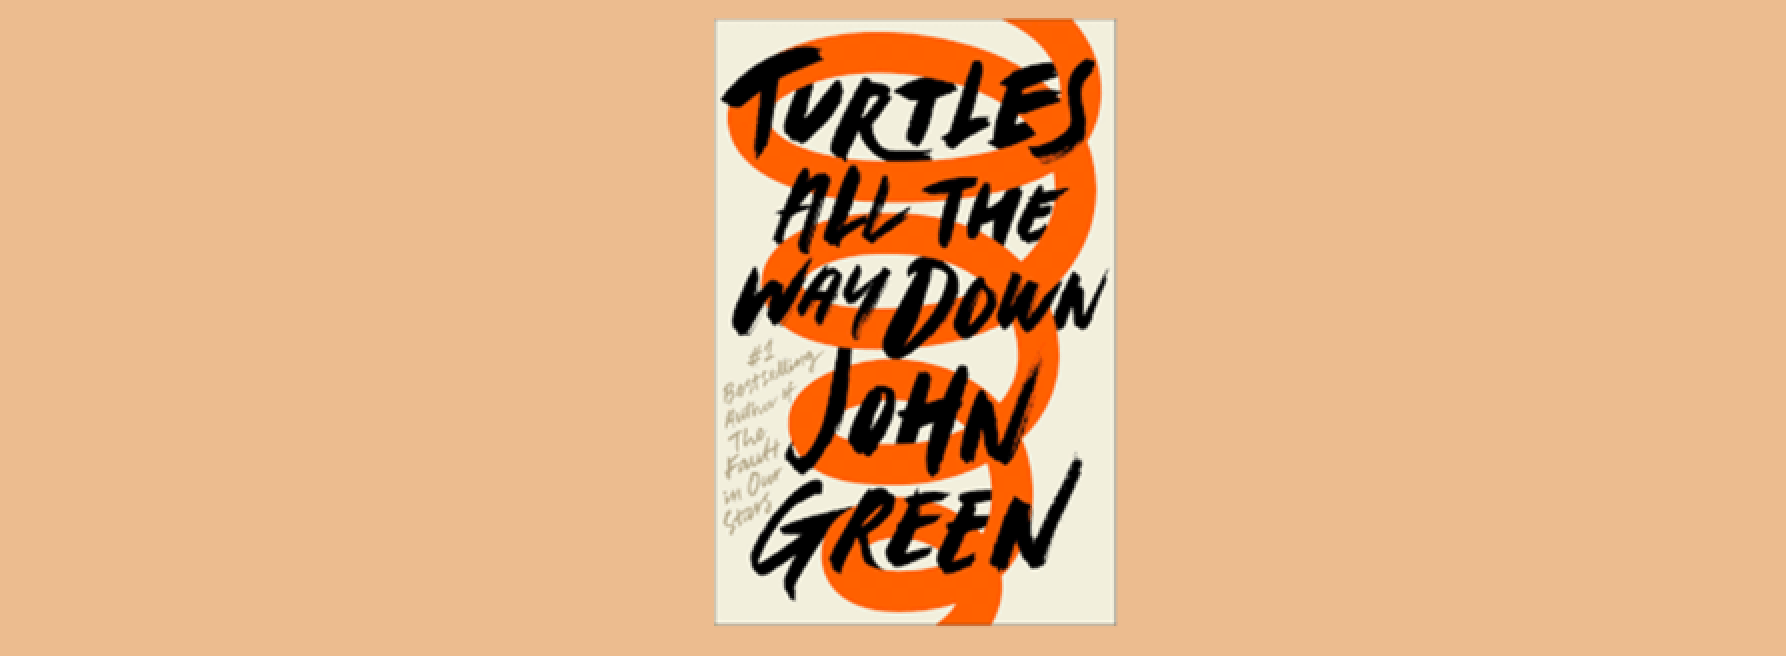 Thoughts on Turtles All the Way Down